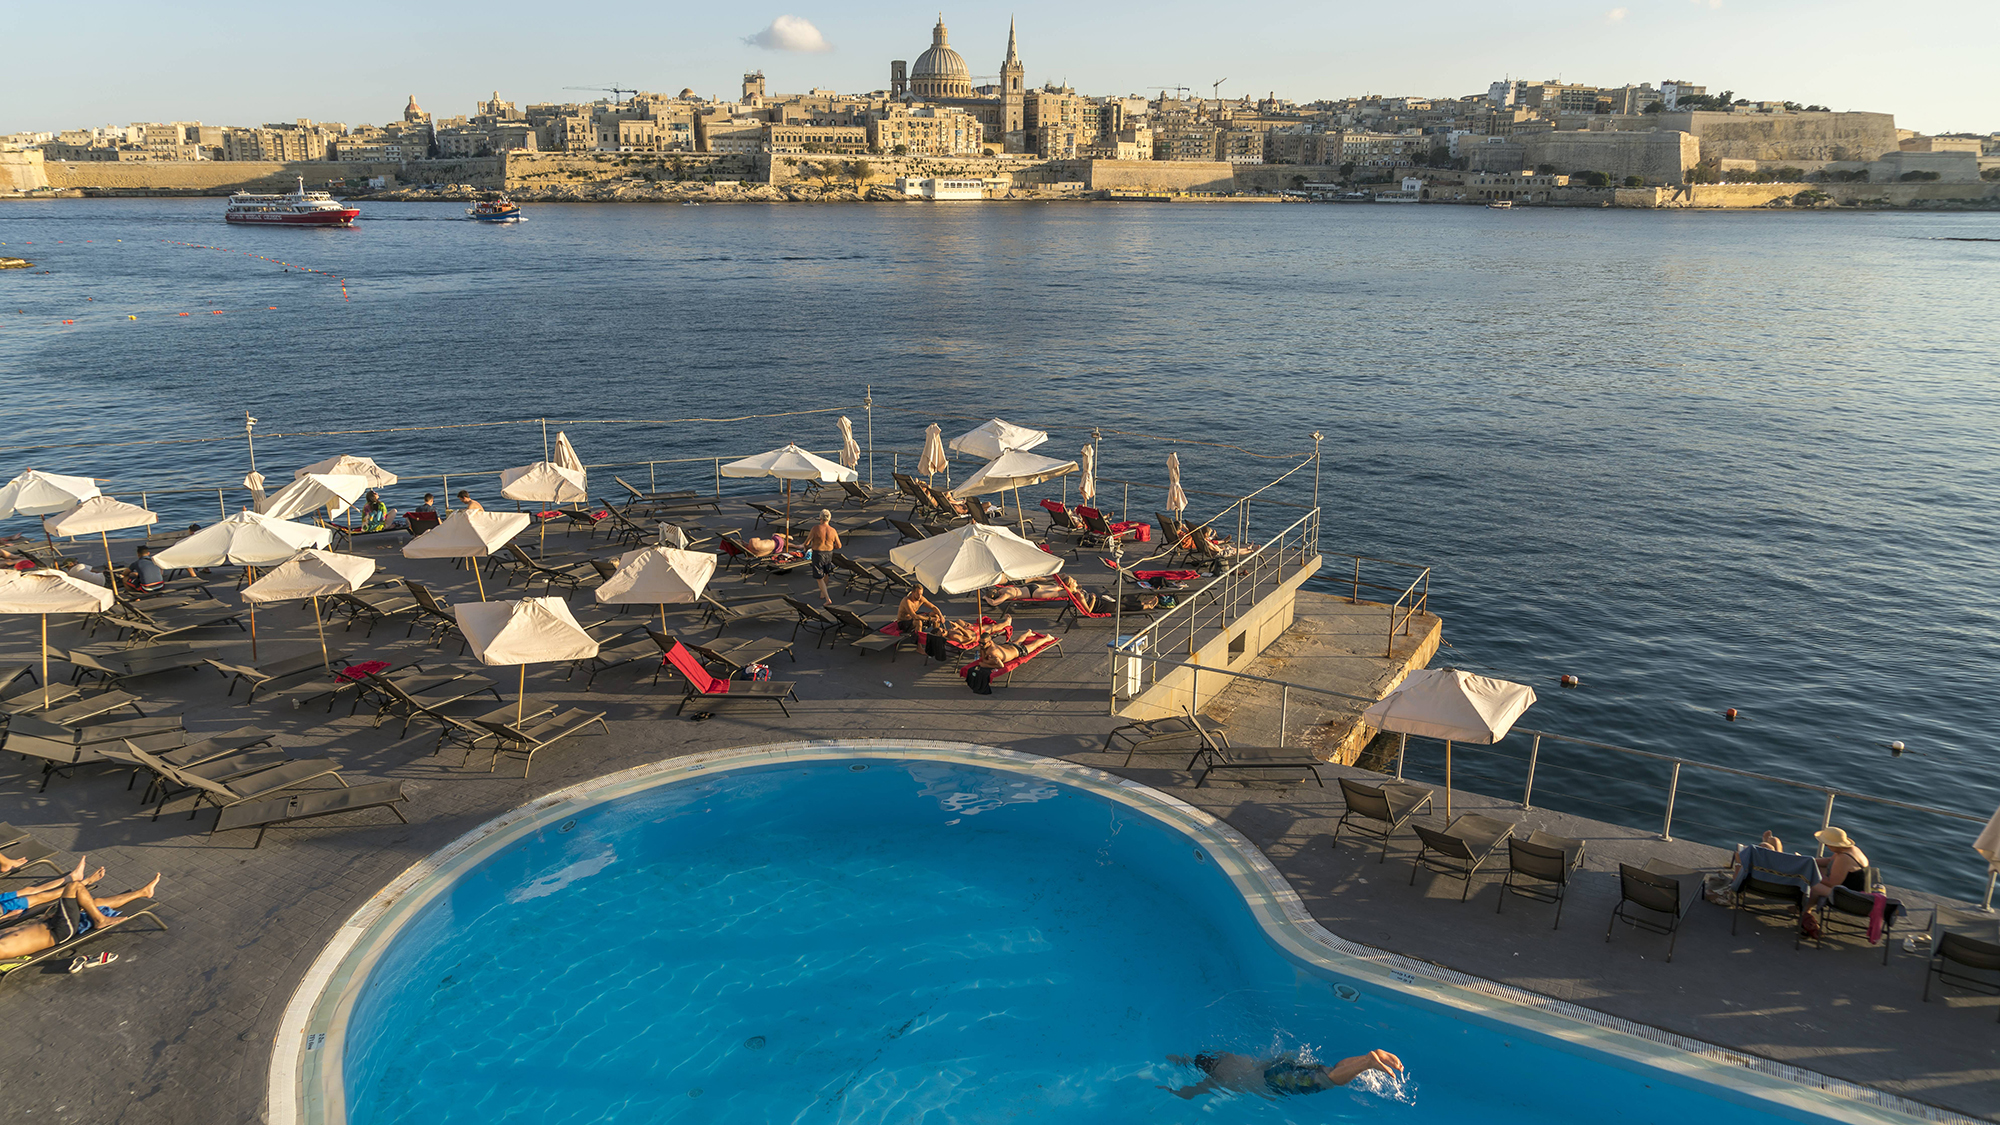 Pool, Hotel Fortina, Stadtansicht von Valletta, Malta Pool, Hotel Fortina, City view of Valletta, Malta PUBLICATIONxINxGERxSU